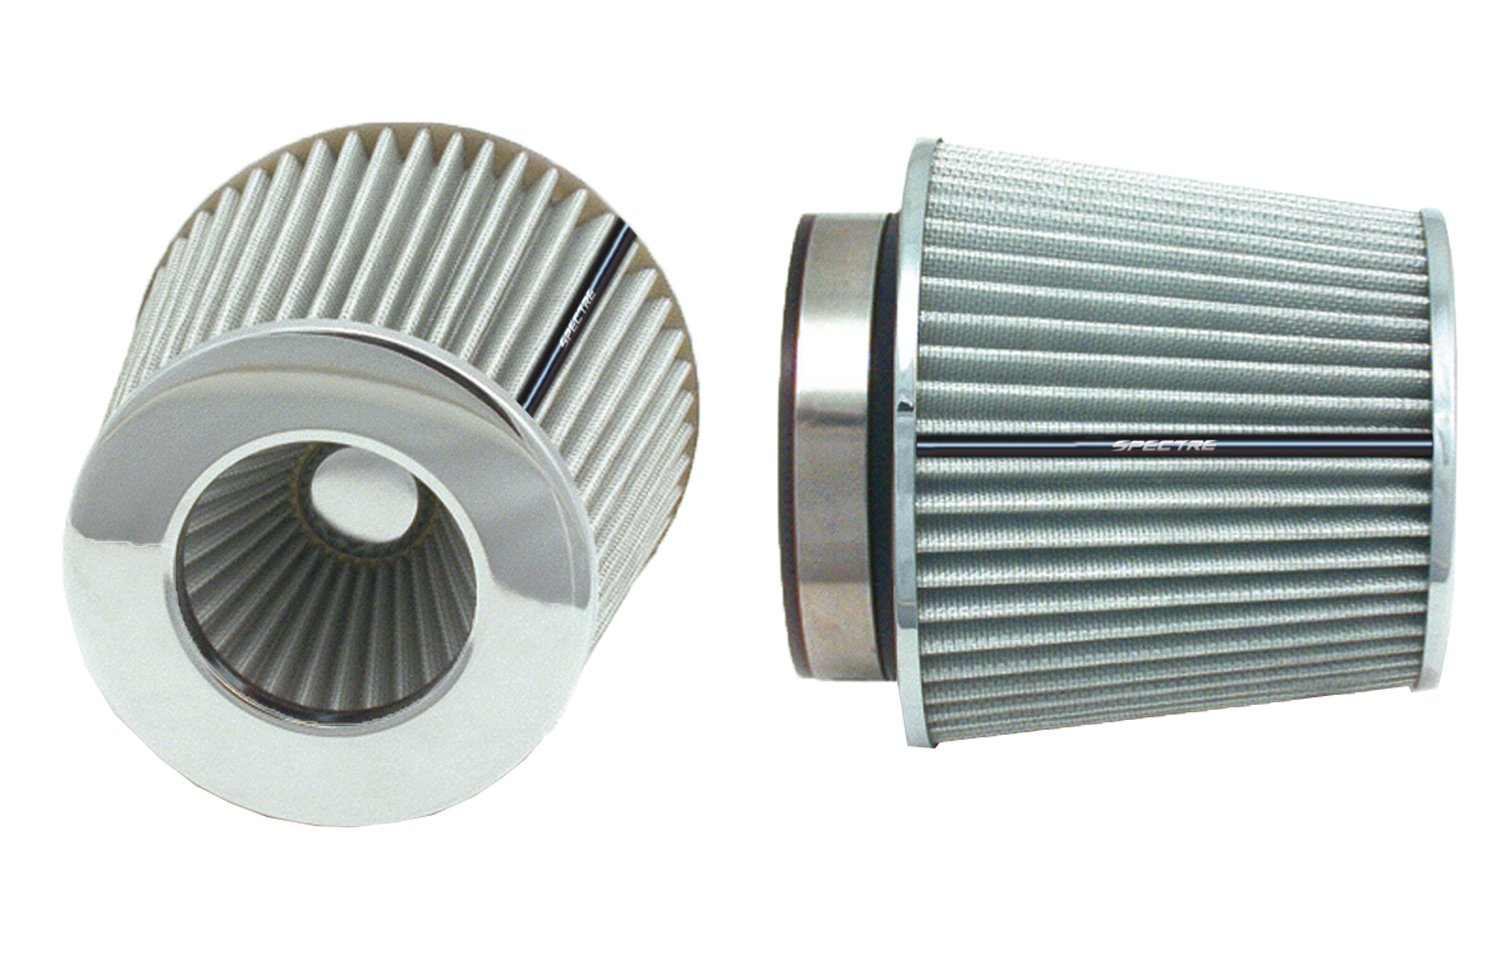 Spectre Performance 8138 Universal Clamp-On Air Filter: Round Tapered; 3 in/3.5 in/4 in (102 mm/89 mm/76 mm) Flange ID; 6.719 in (171 mm) Height; 6 in (152 mm) Base; 4.75 in (121 mm) Top by Spectre Performance (Image #1)